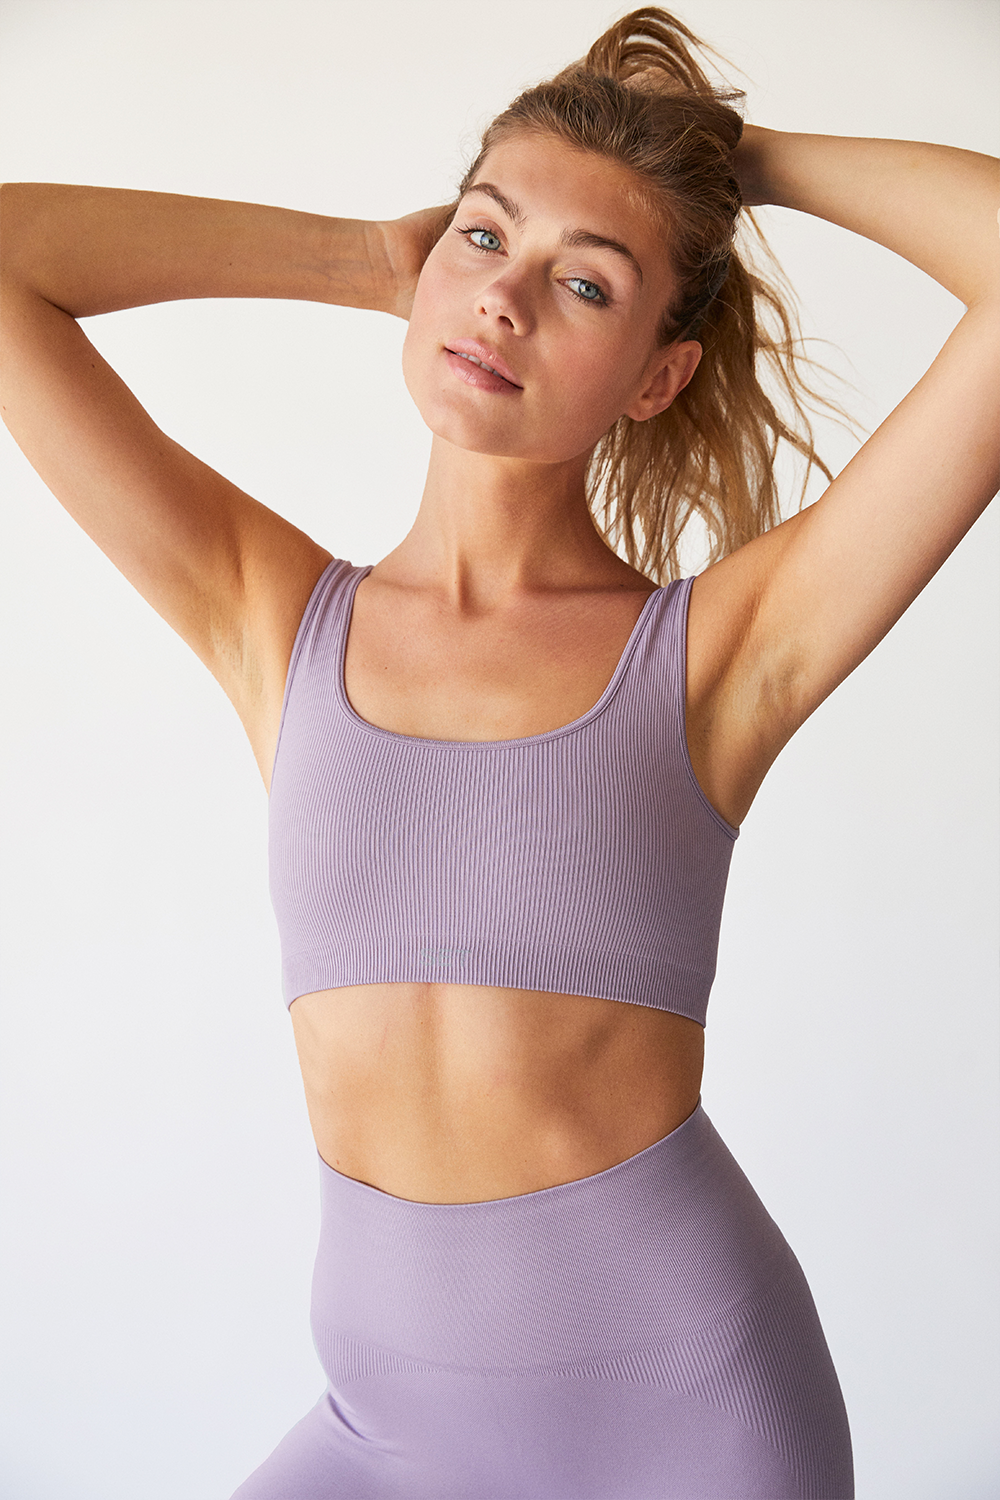 Model wearing the Set Active Box Cut sports bra